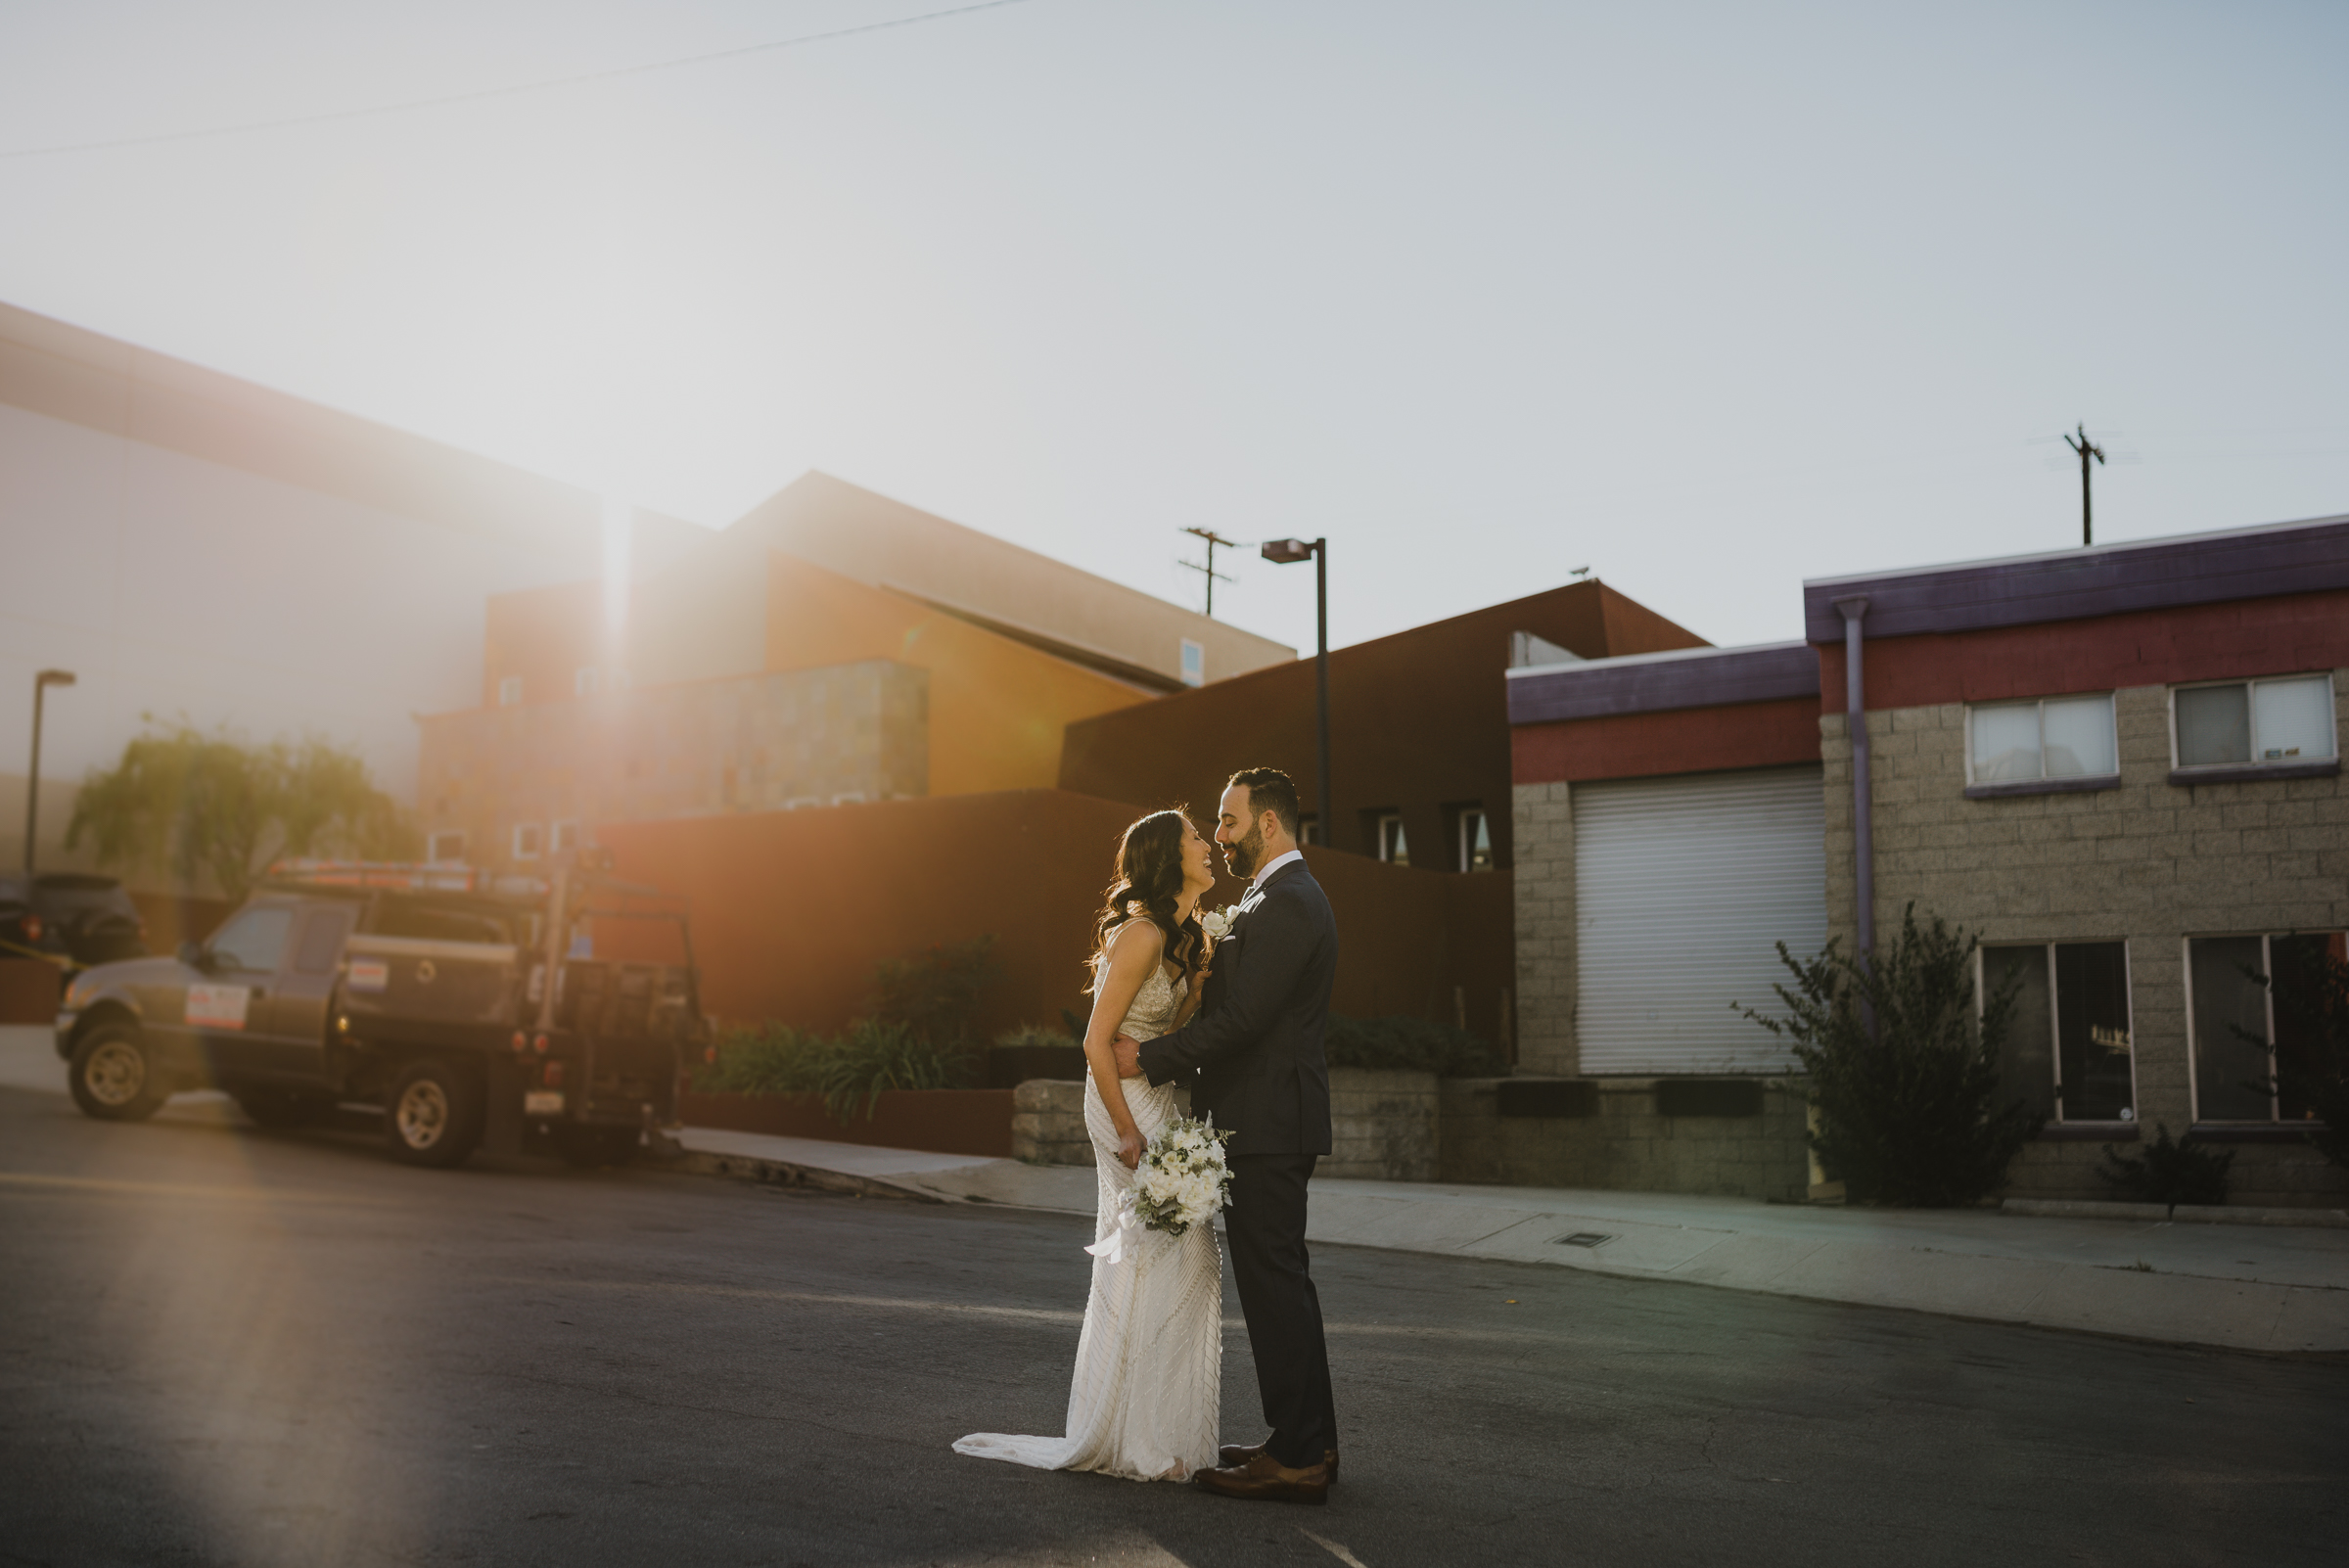 ©Isaiah + Taylor Photography - Big Door Studios Wedding, El Segundo, Los Angeles Wedding Photographer-46.jpg